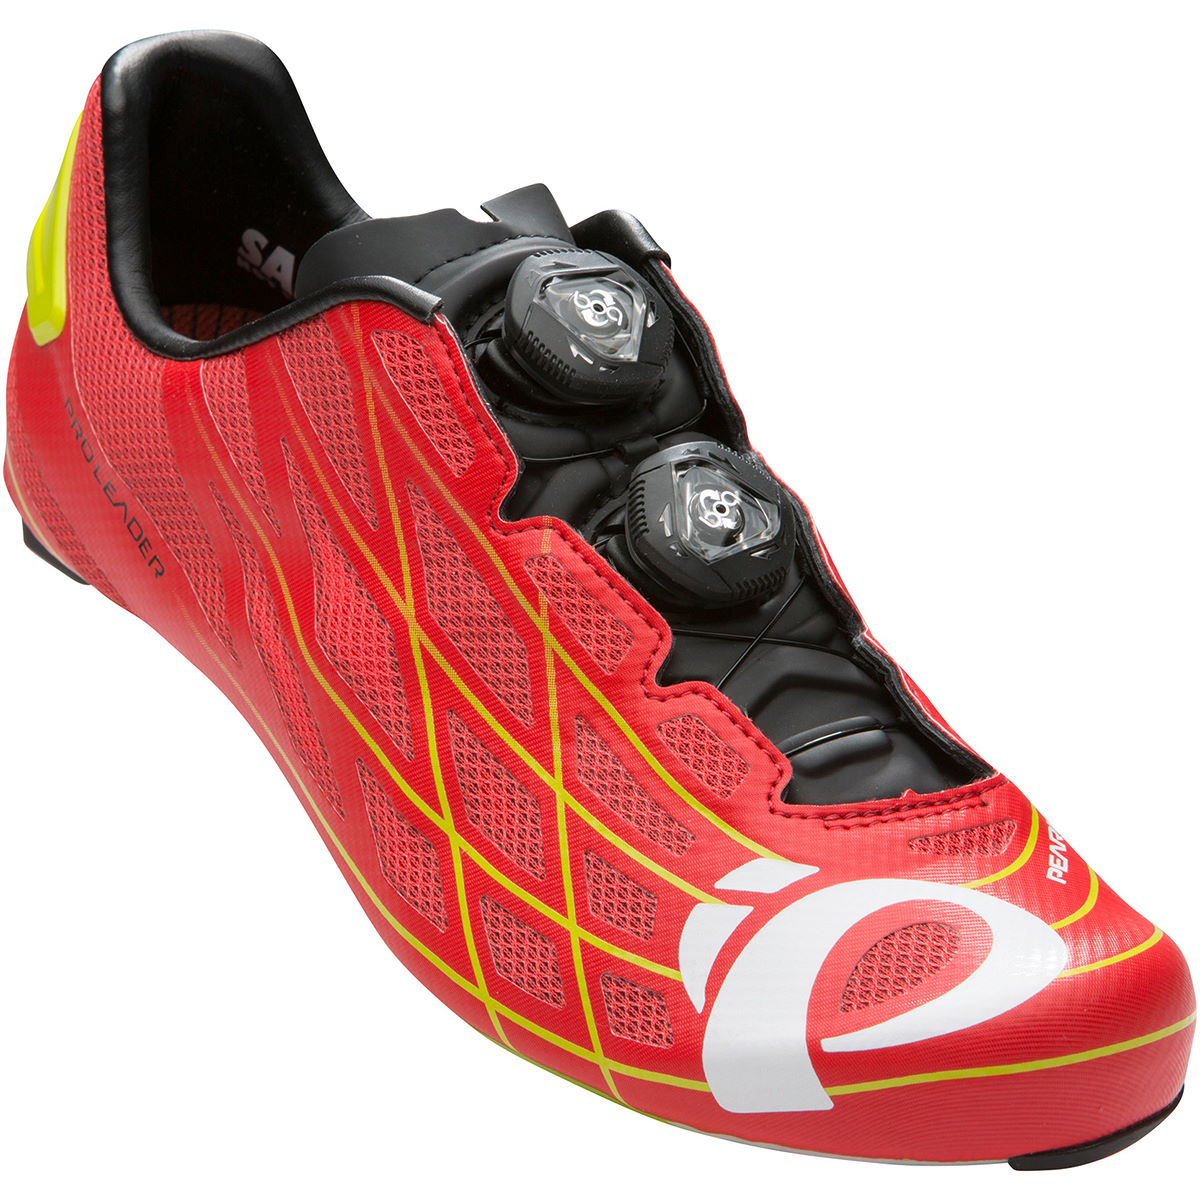 Chaussures de route Pearl Izumi Pro Leader III - 39